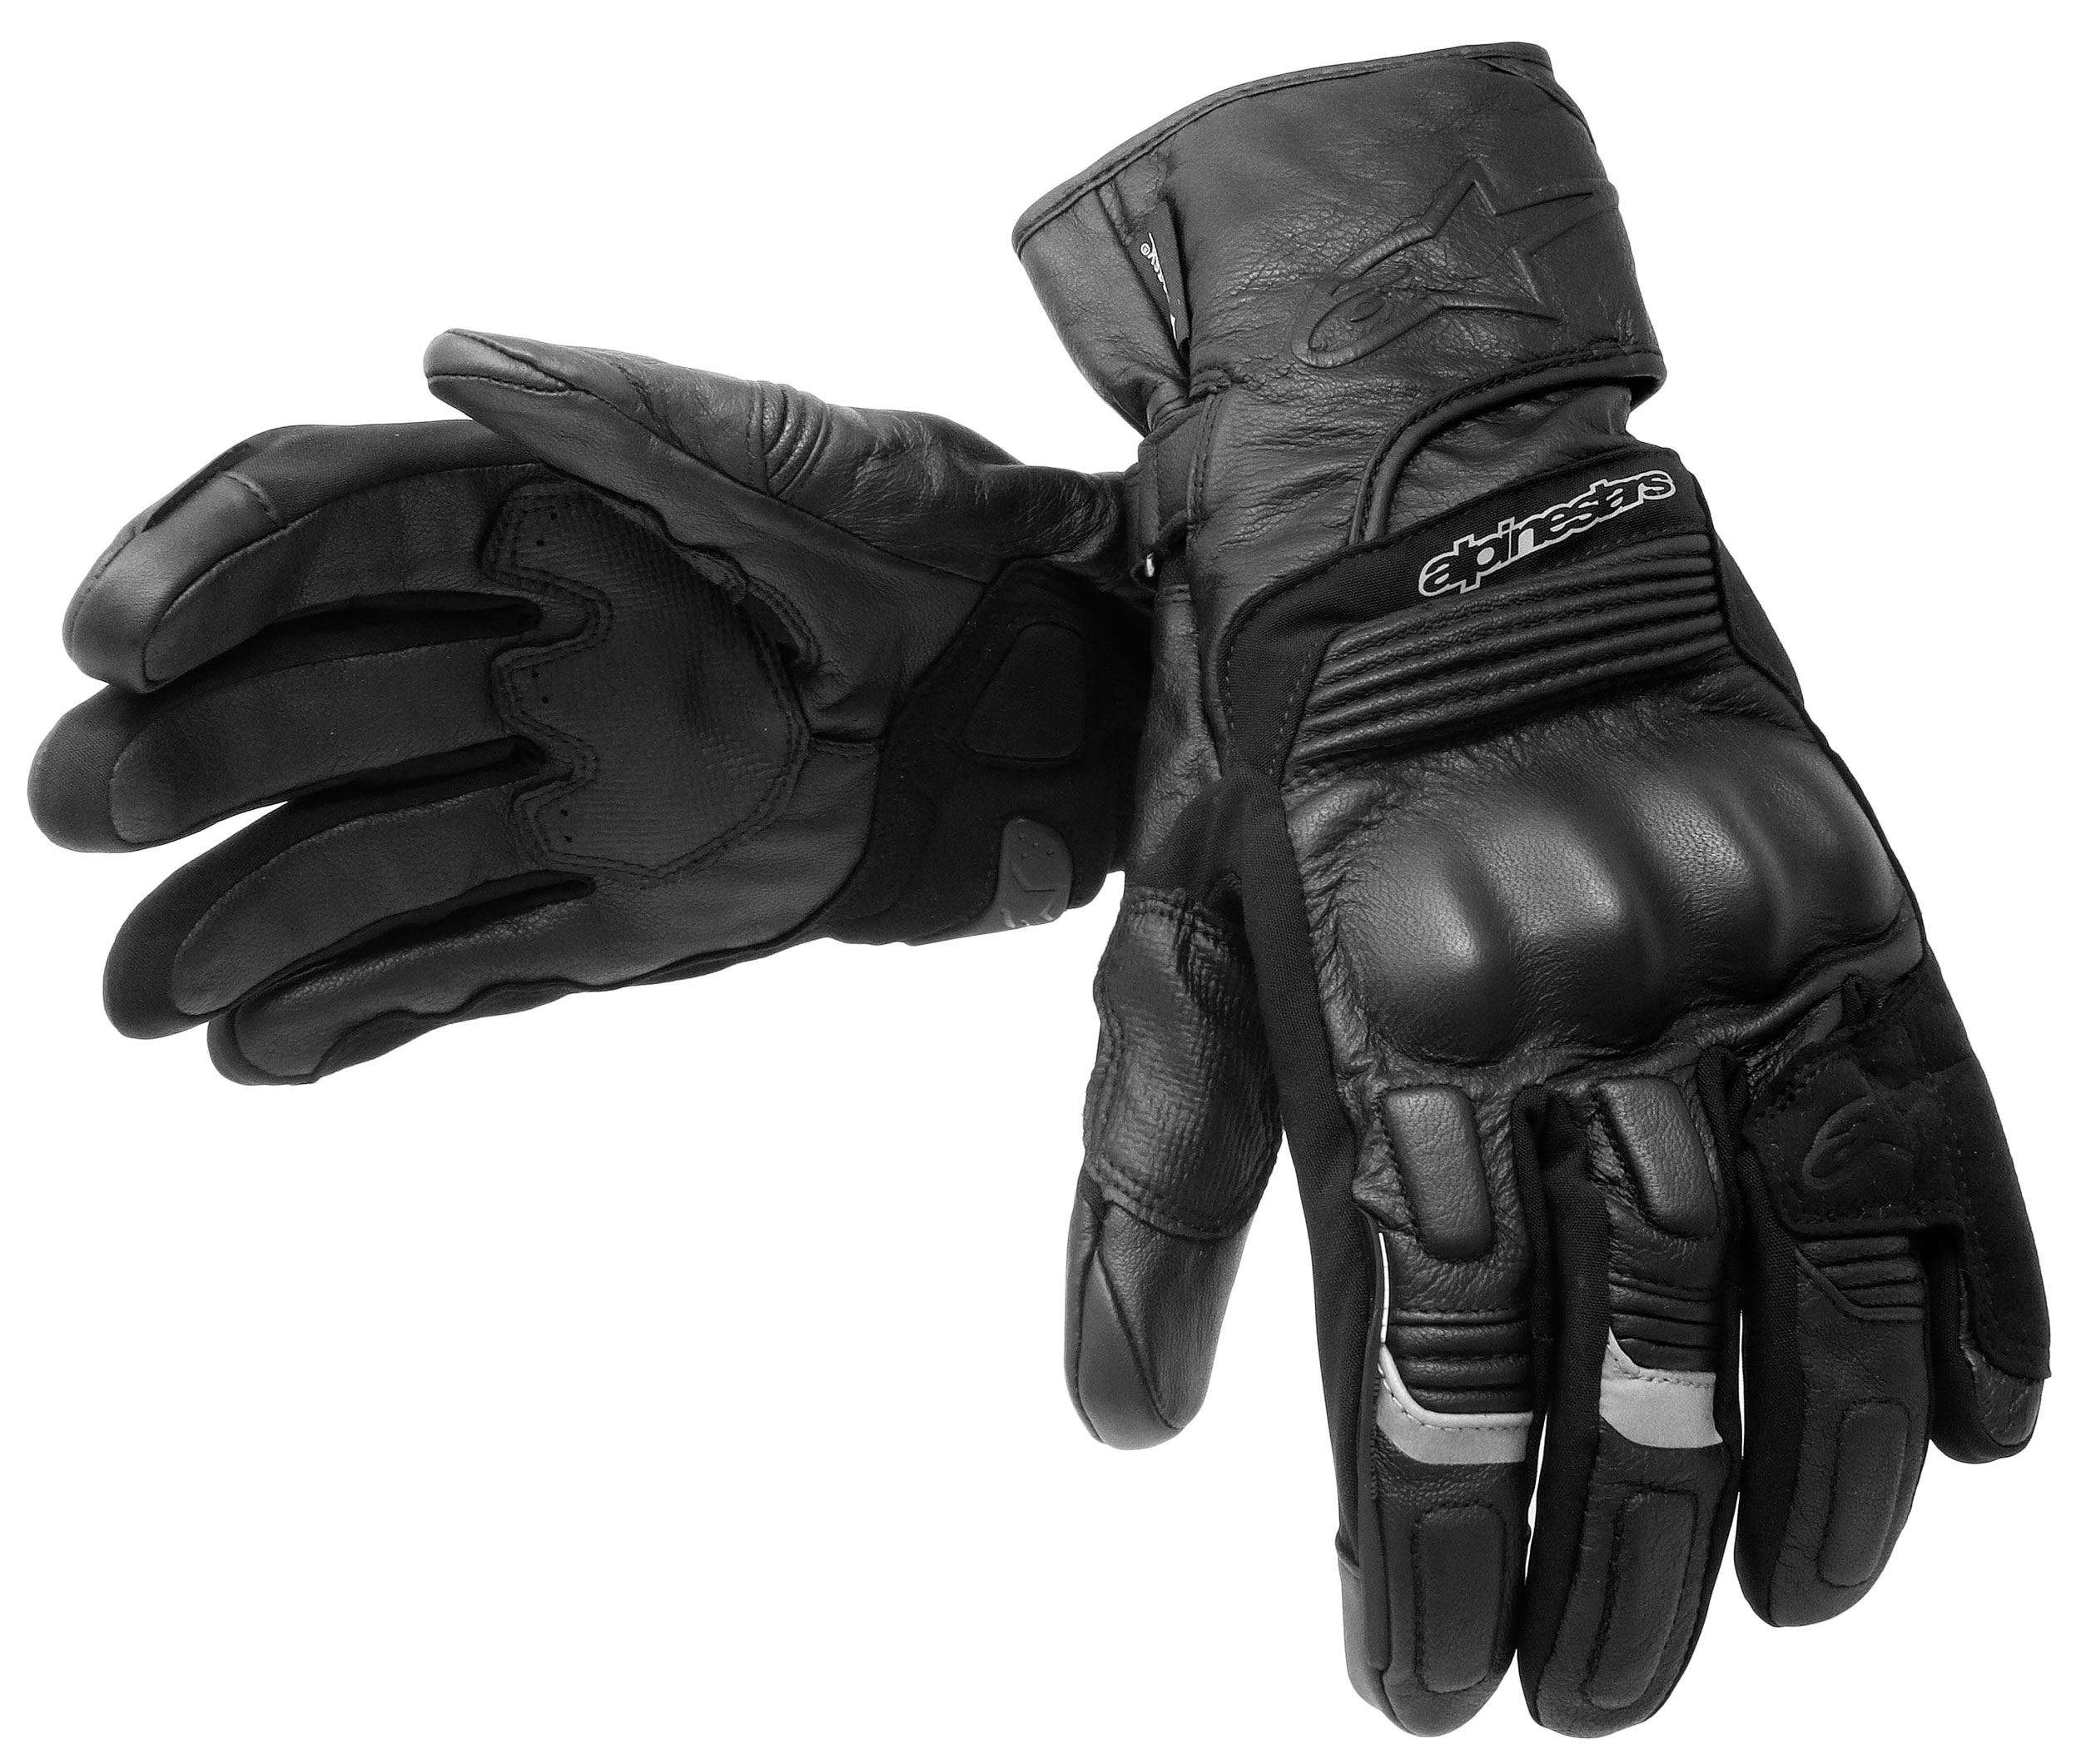 Waterproof motorcycle gloves for Summer: The 4 best Alpinestars gloves to buy